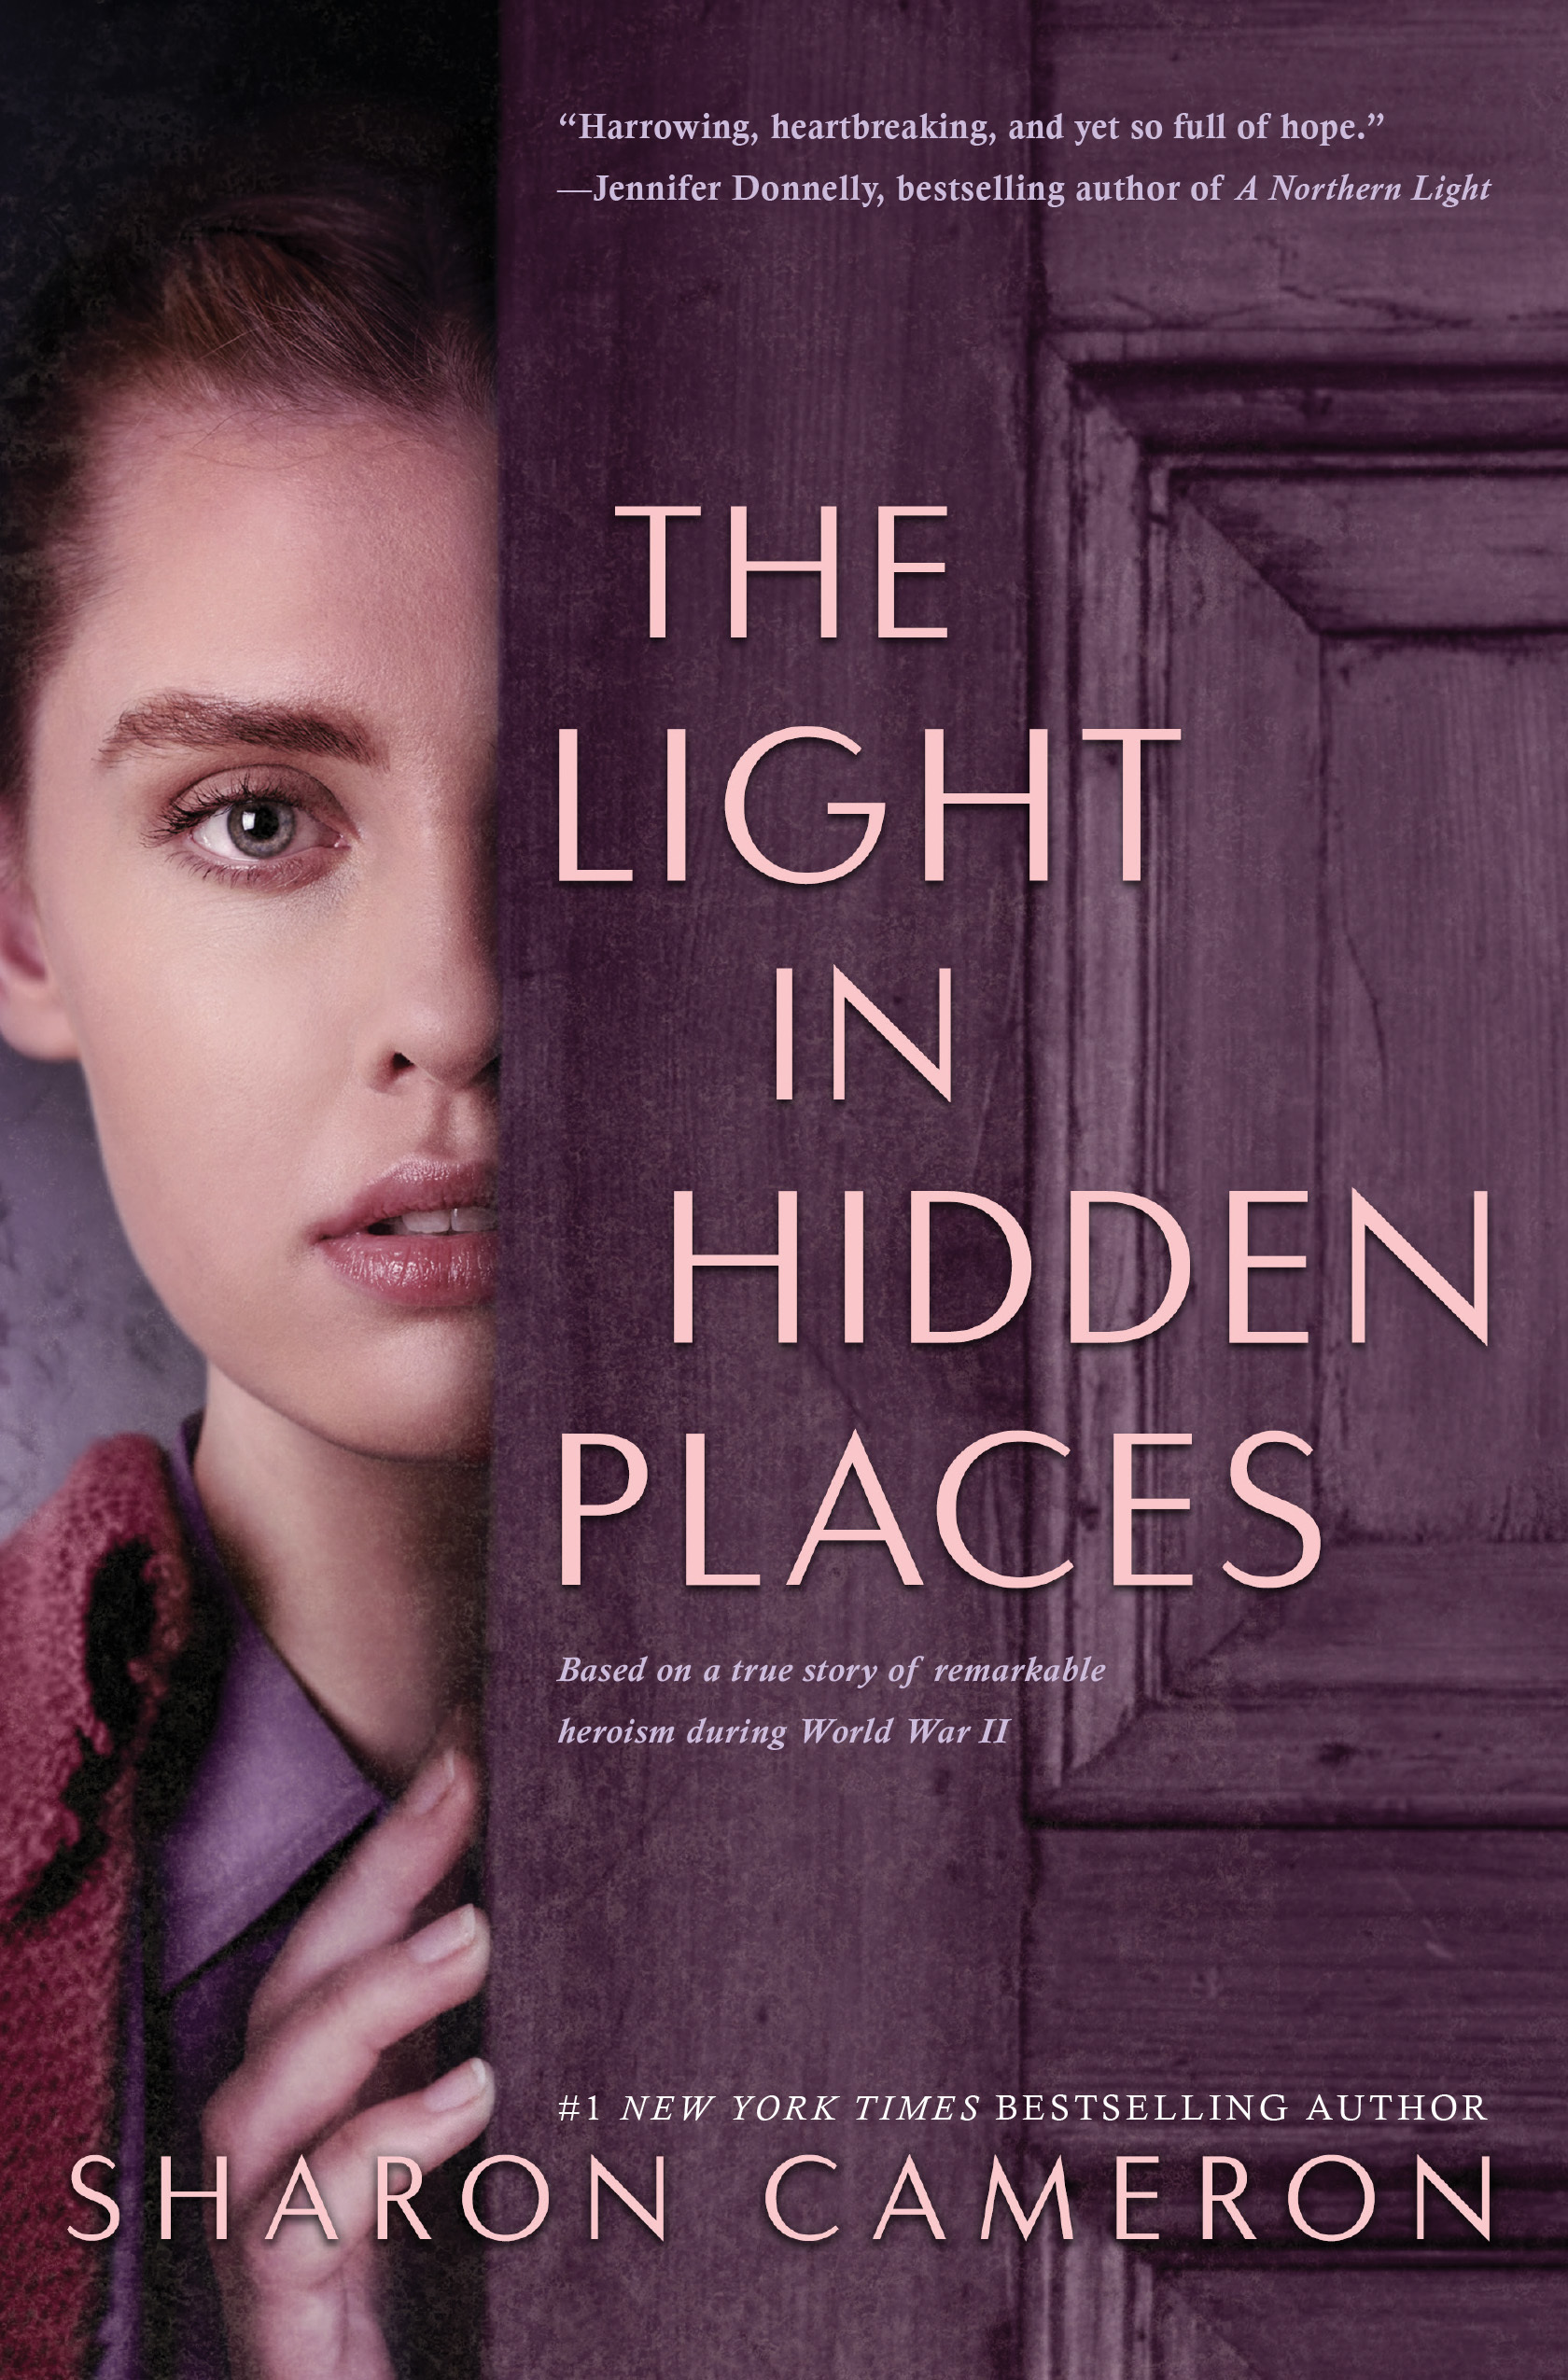 The Light in Hidden Places - Sharon Cameron